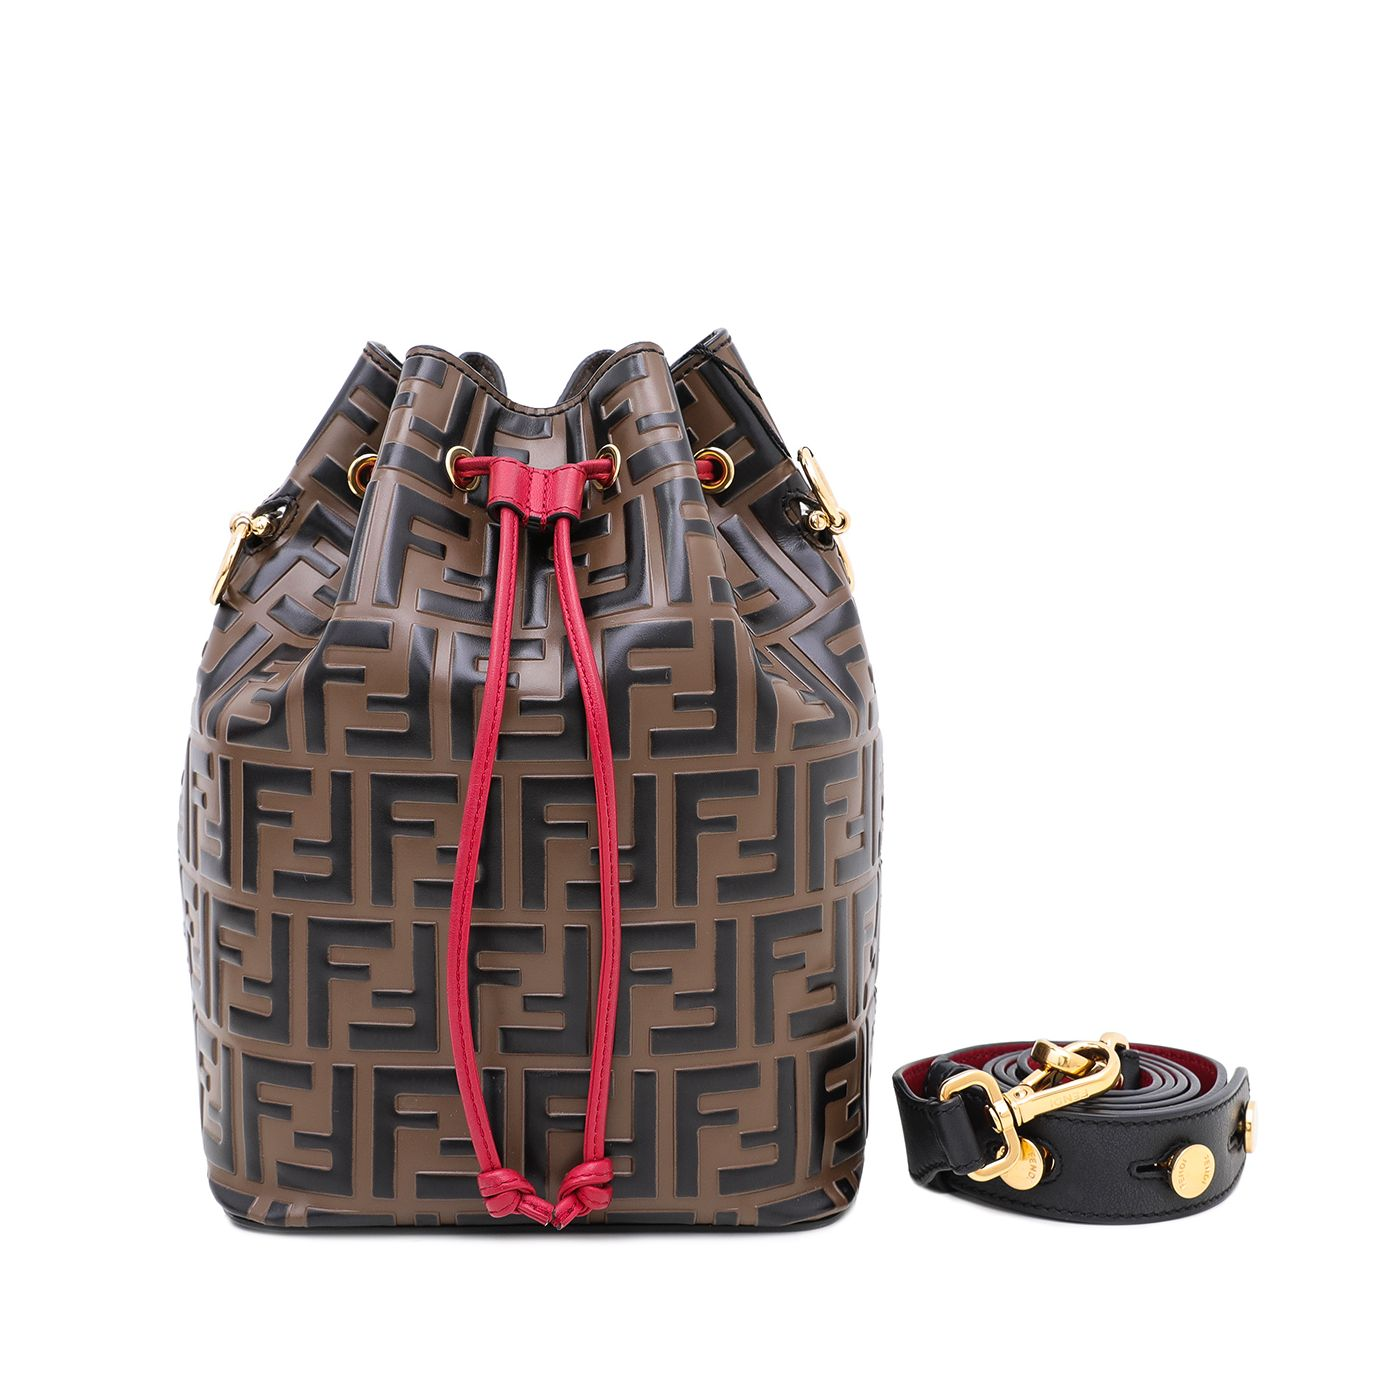 Fendi Tricolor Mon Tresor Bucket Bag